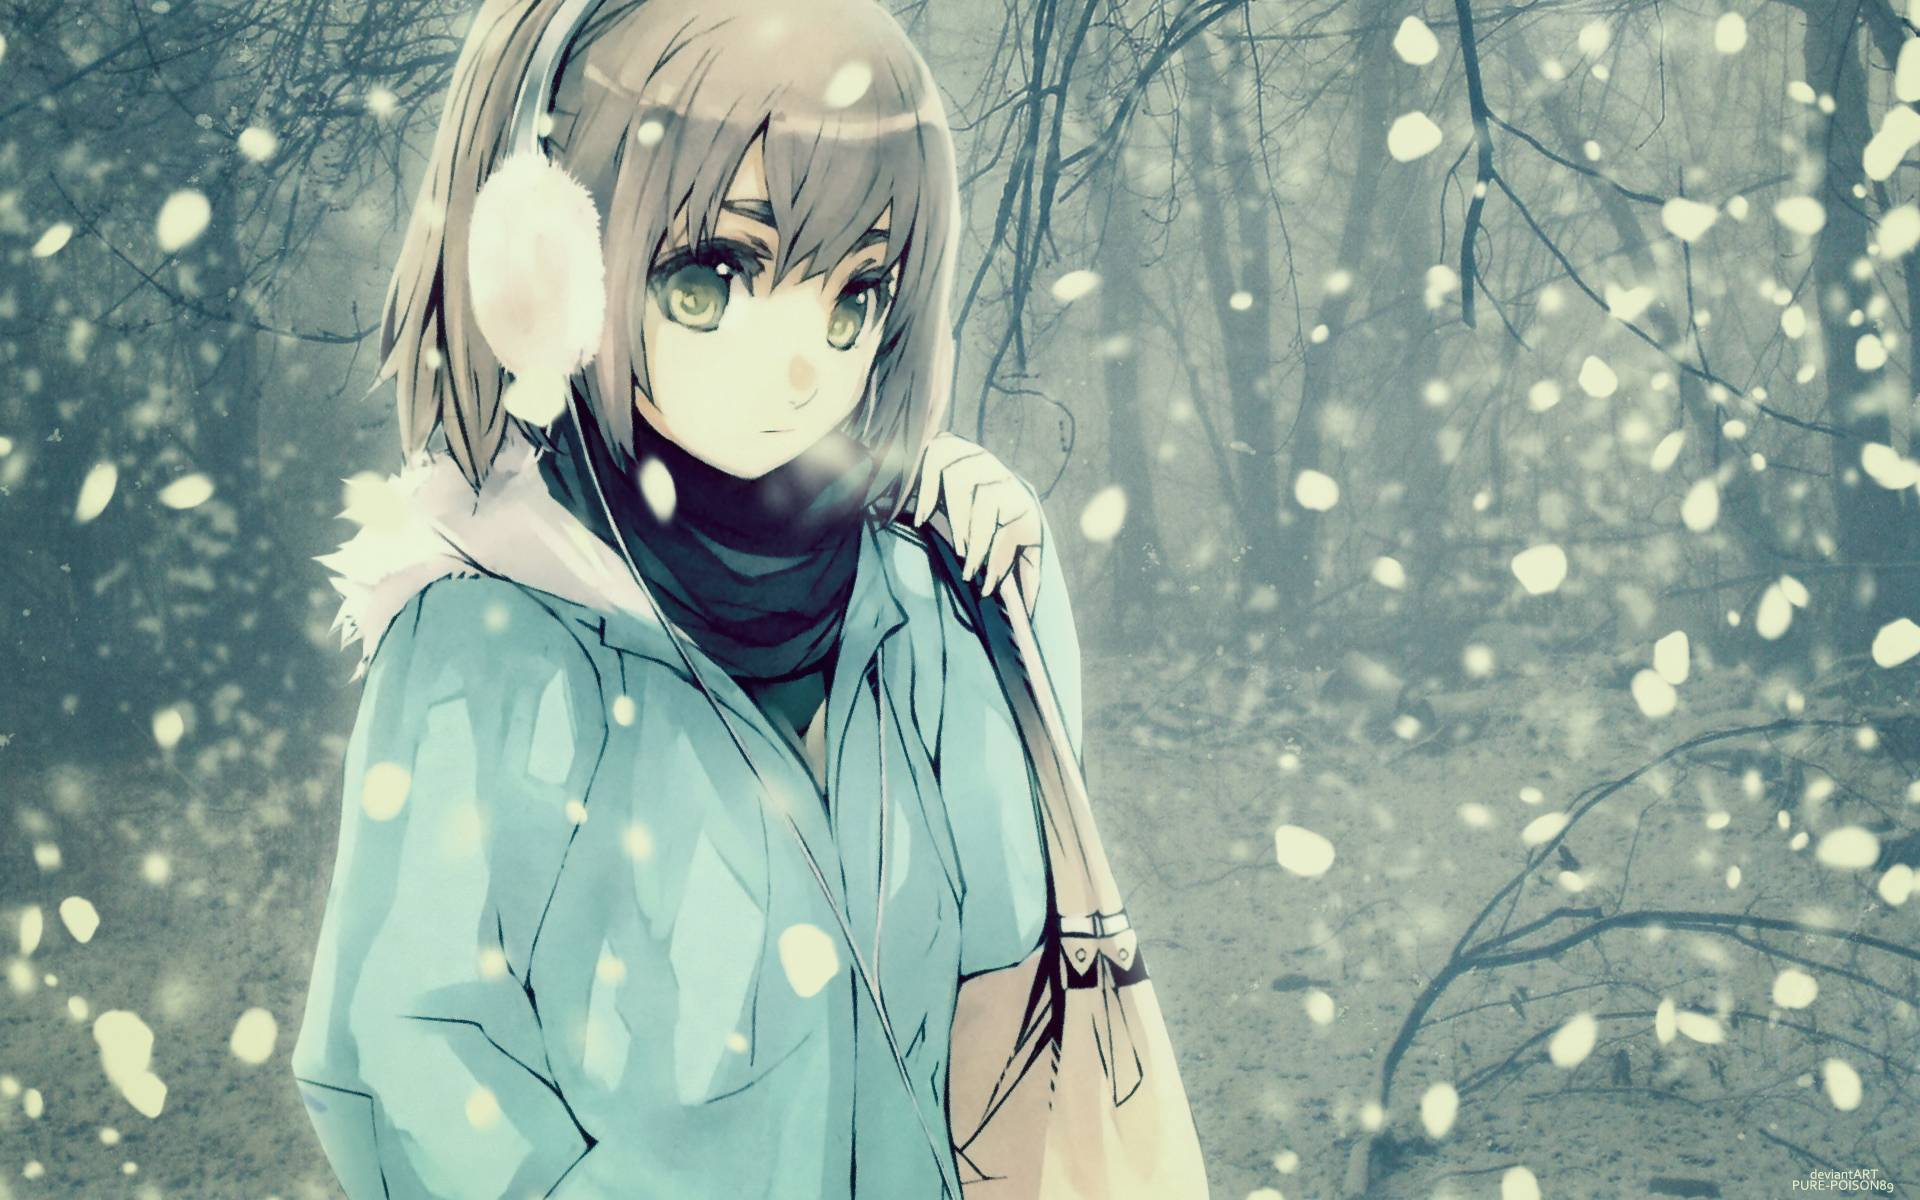 Sad Love Animation Wallpaper : Winter Anime Wallpapers - Wallpaper cave